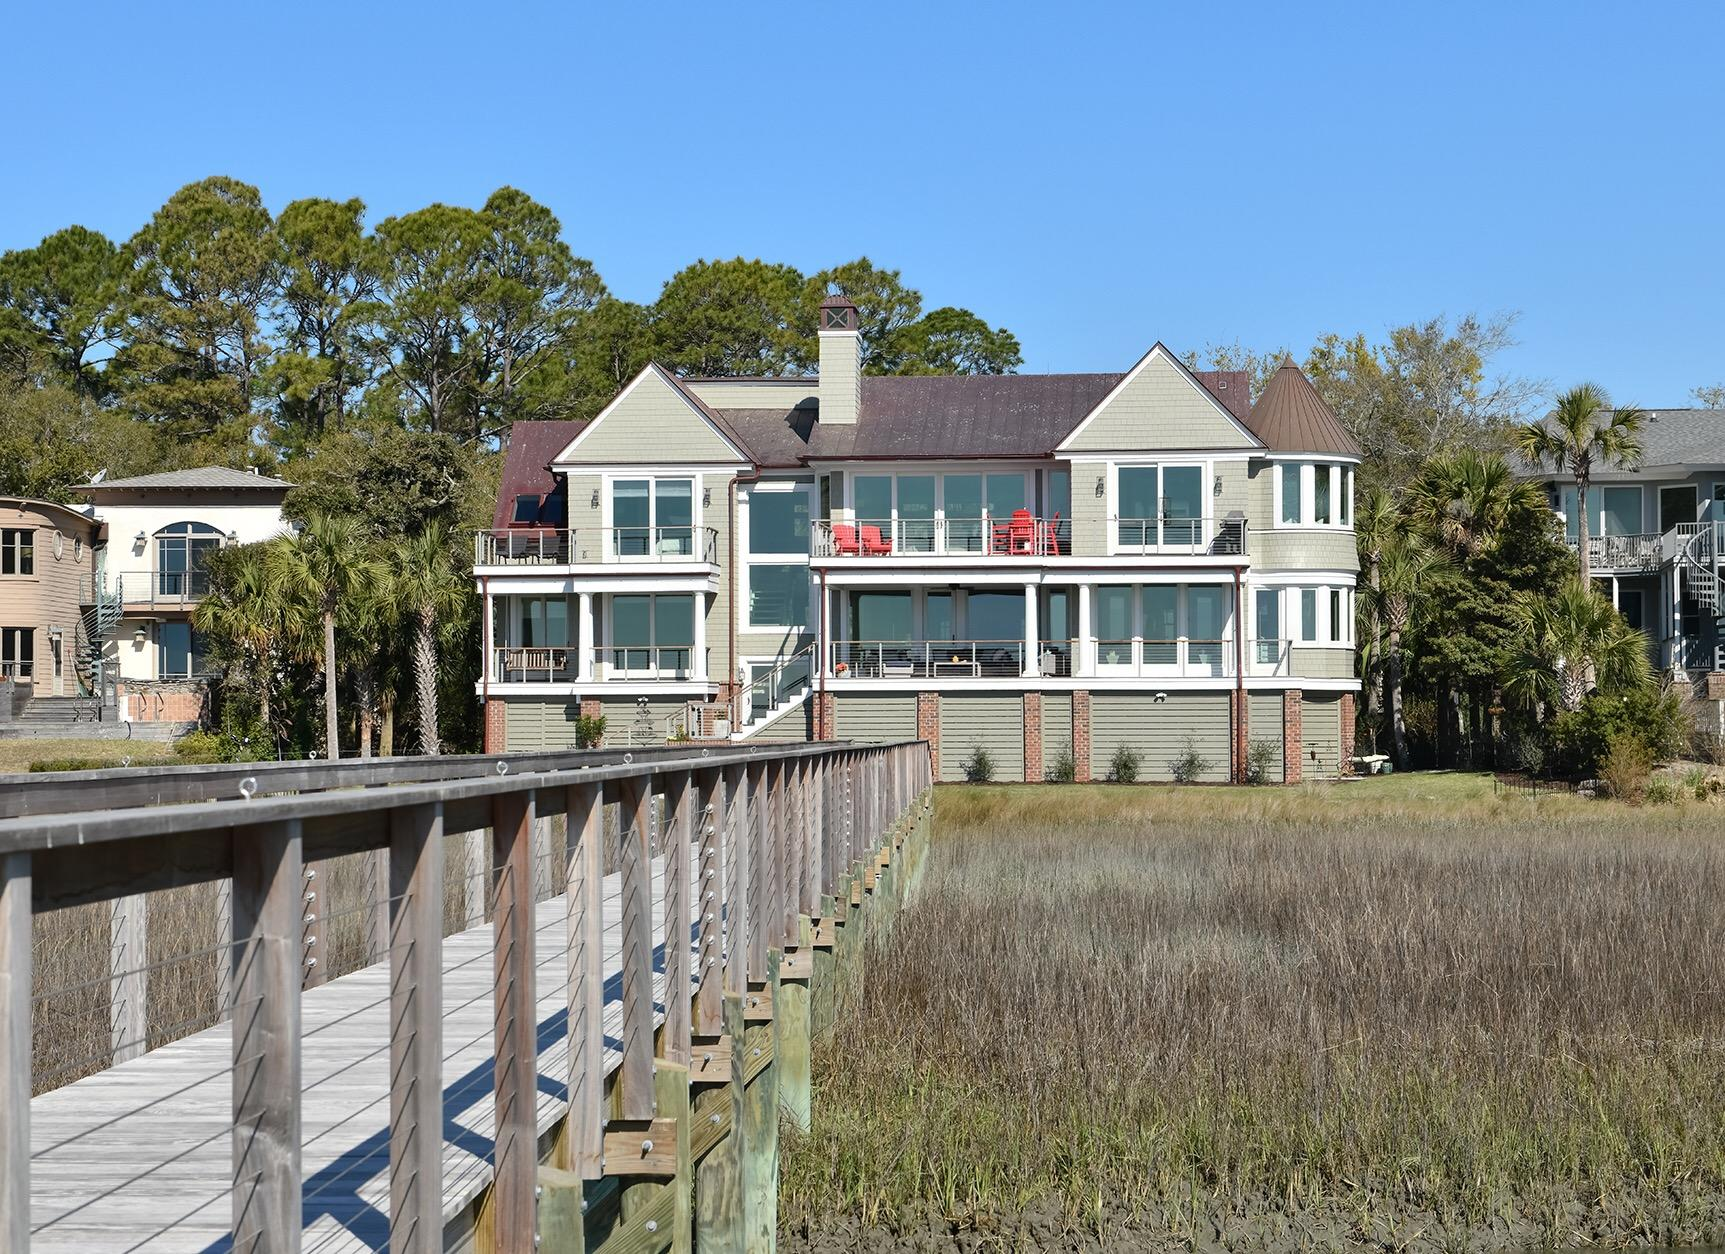 Seabrook Island Homes For Sale - 3103 Marshgate, Seabrook Island, SC - 19